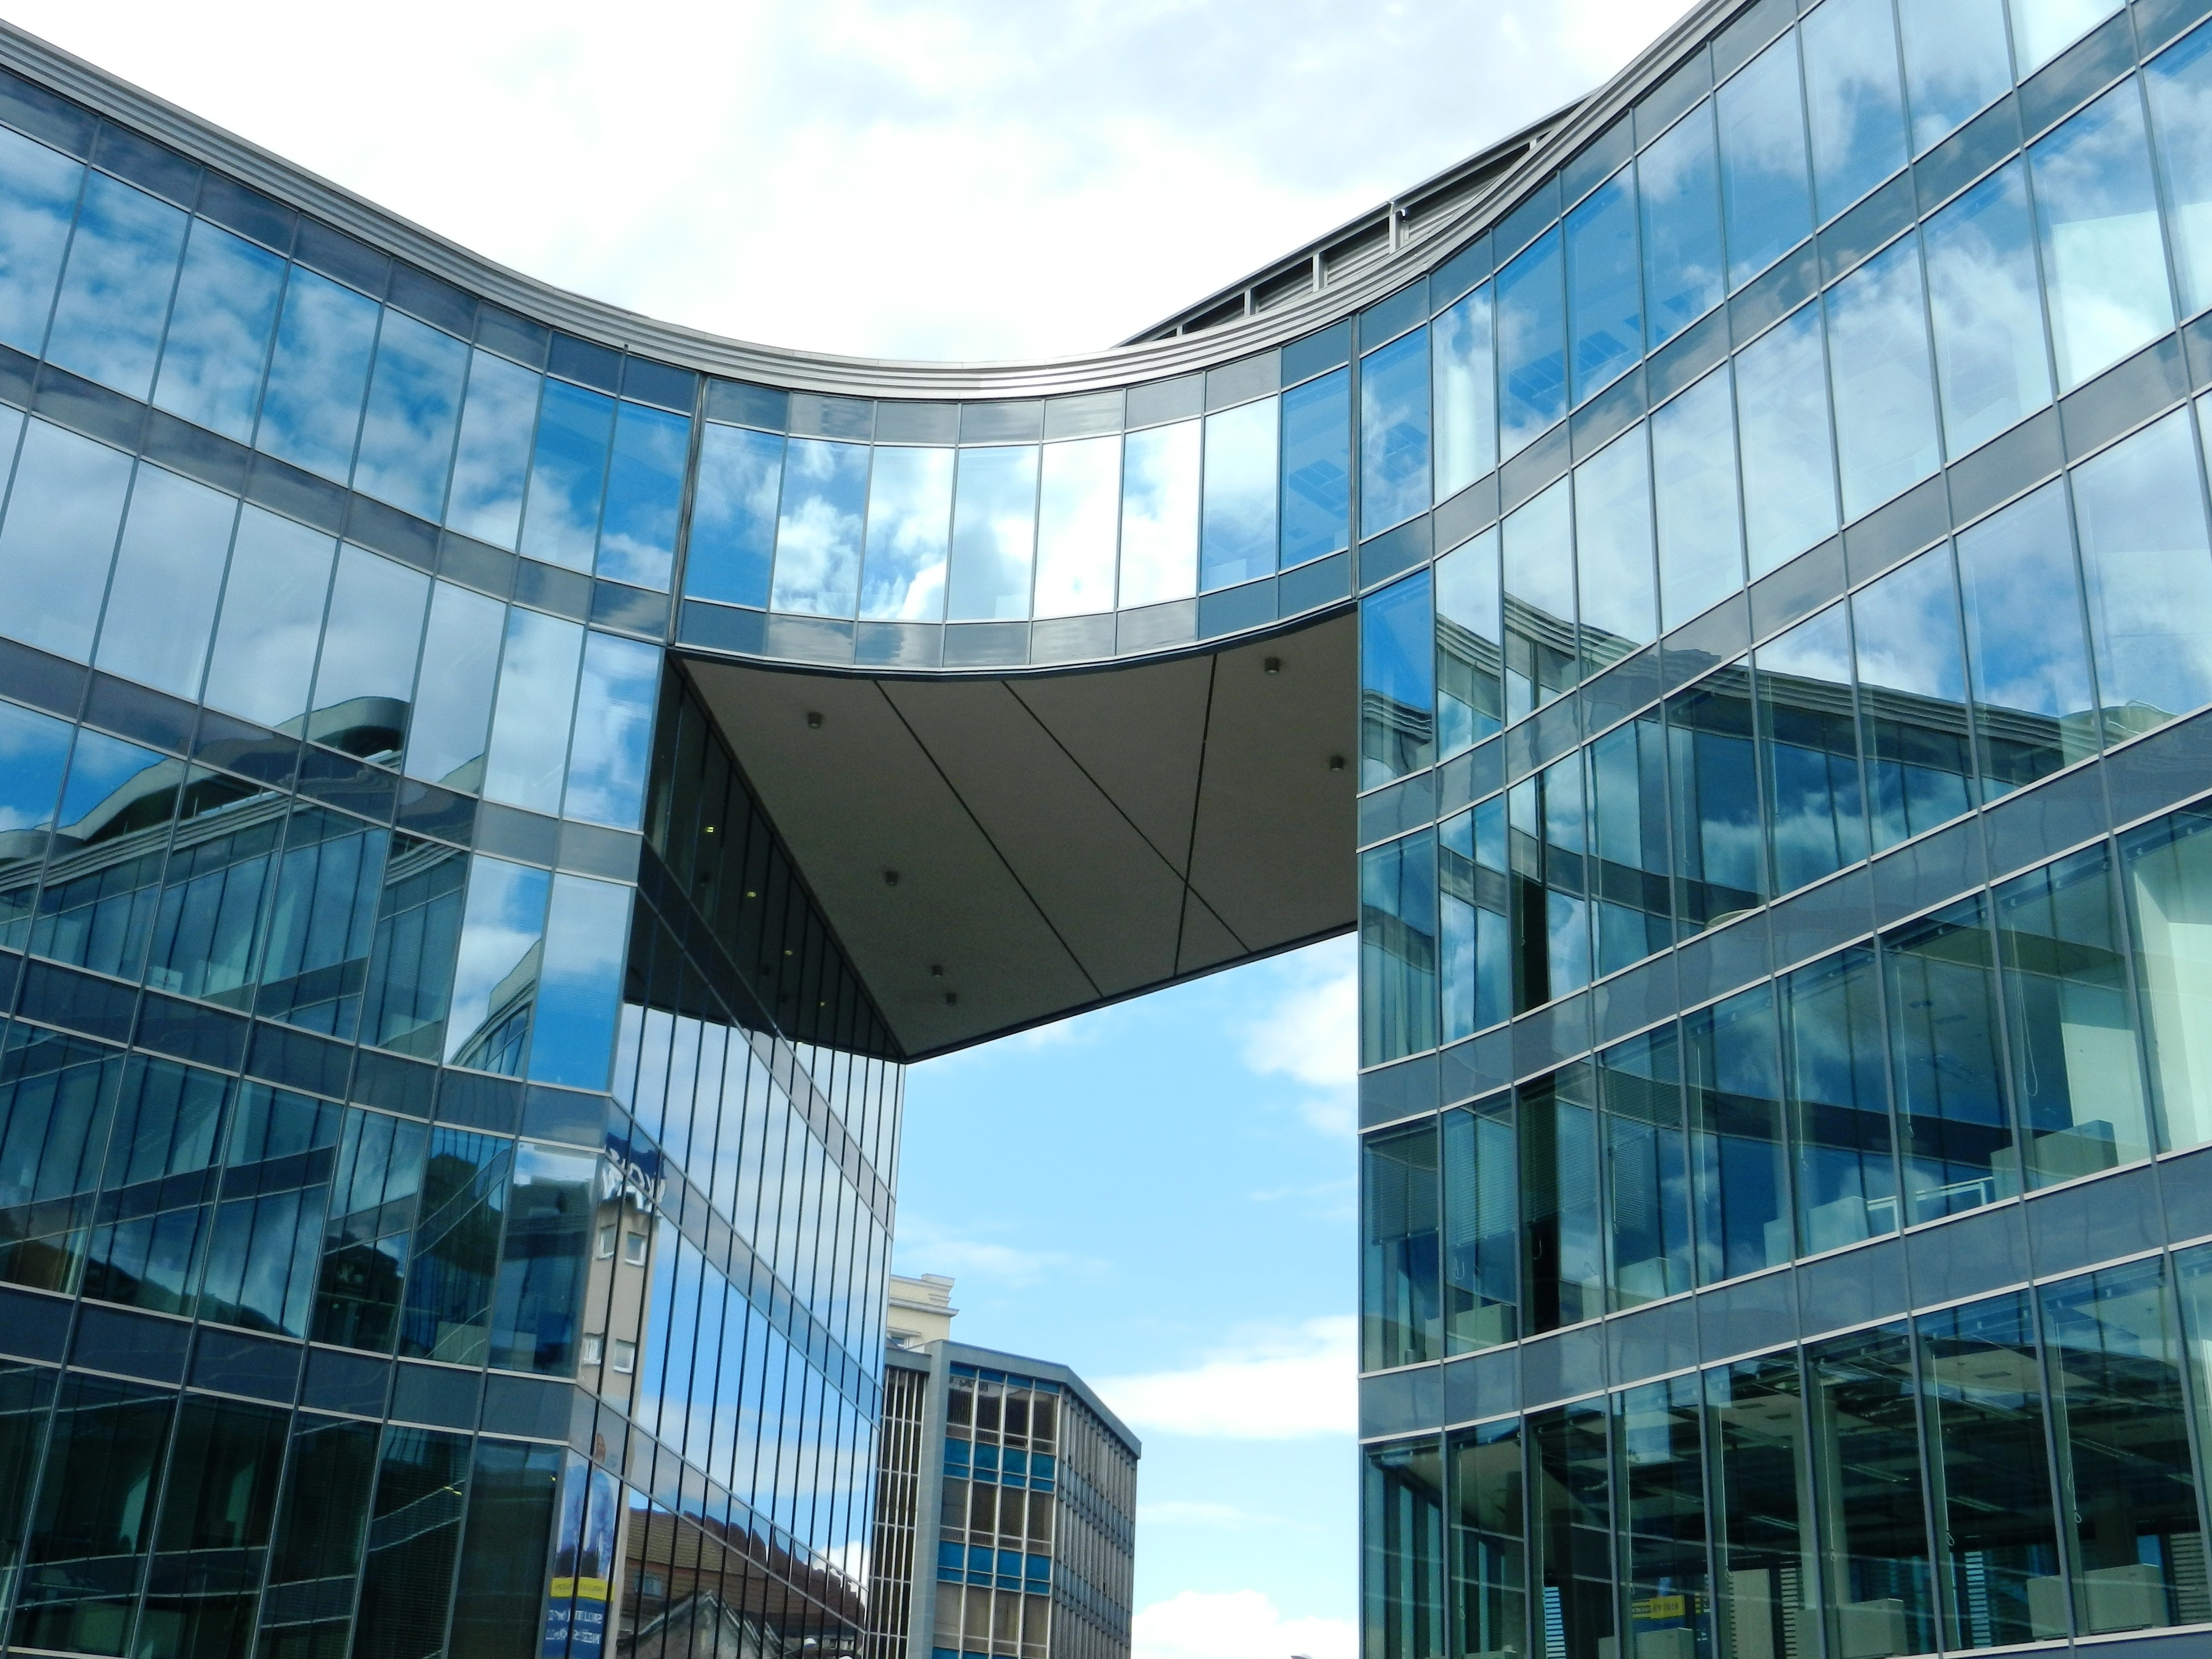 Free stock photo of building, office, glass, architecture